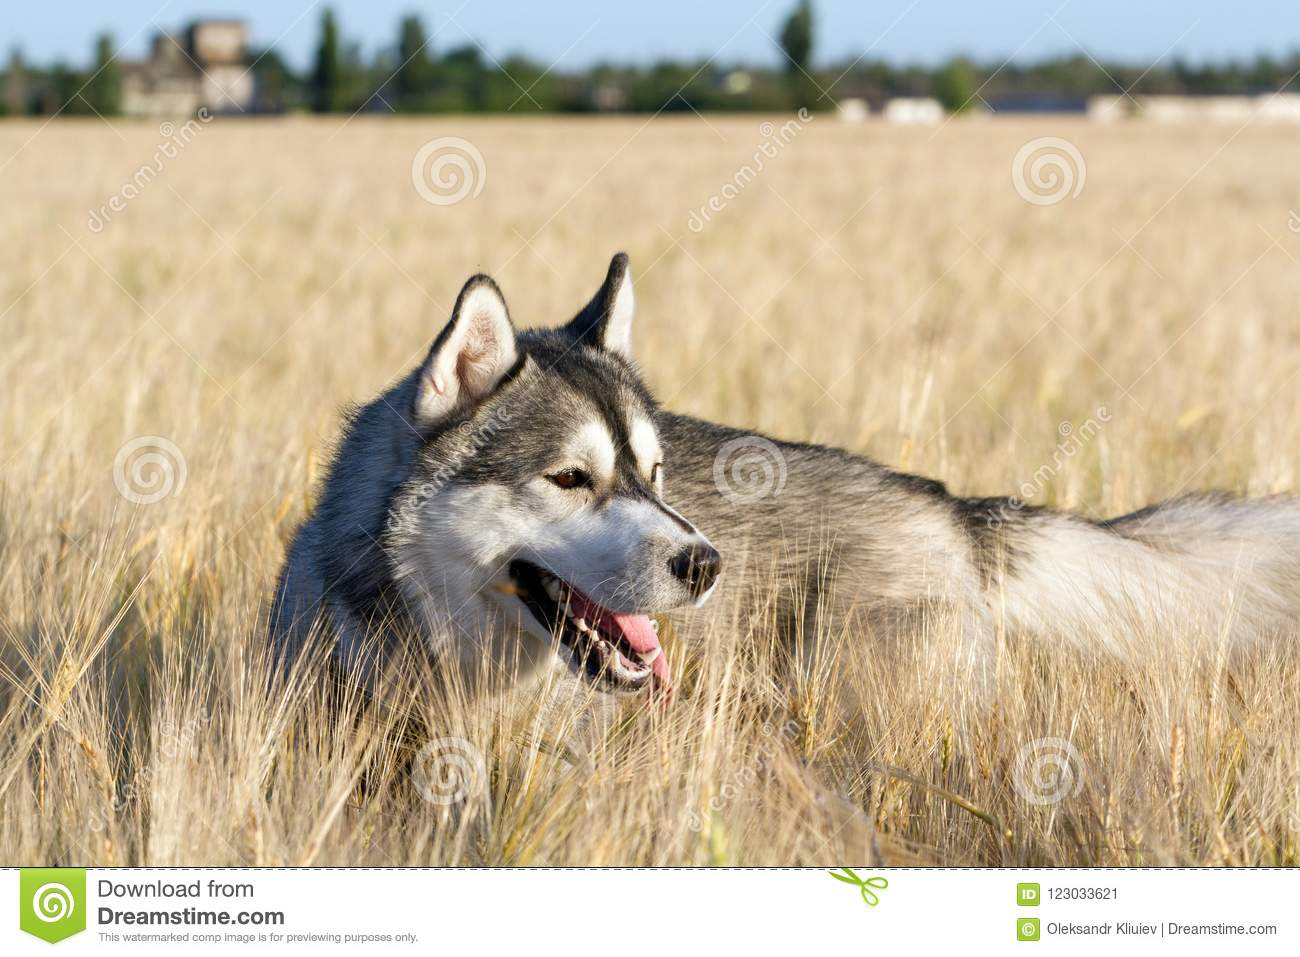 A Dog Of The Siberian Husky Breed Of Black And White Color